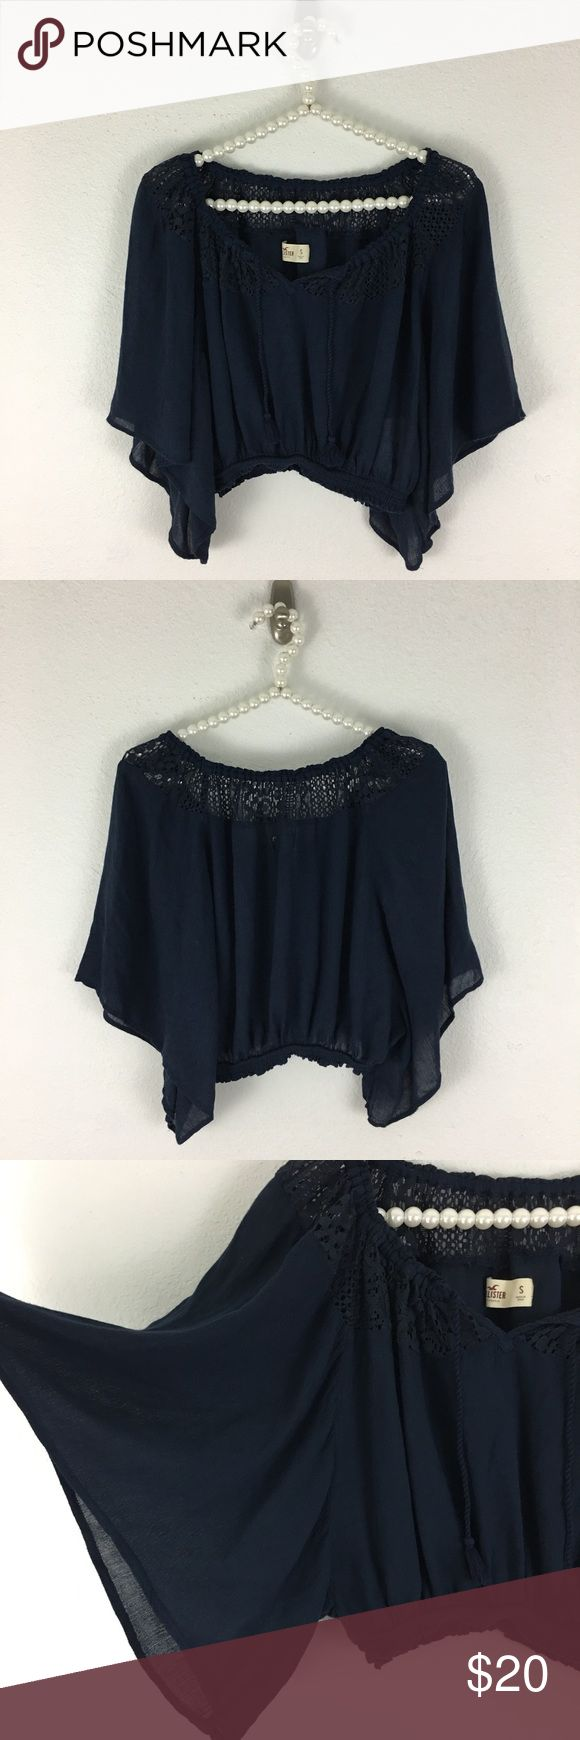 Hollister 🌻Festival🌻 Crop Top ! So cute ! Sz Sm I love this shirt ,the sleeves and neckline are flattering - it has elastic around the neckline and it can be worn on or off the shoulder depending on your style. Navy Blue, Kimono style sleeves & elastic hem. It's gauze material & made of 100% Rayon. This is a size Small with a loose open bust - I measured the elastic waist and that is approximately 12 inches measured flat- unstretched and length is approximately 15 inches measured from…